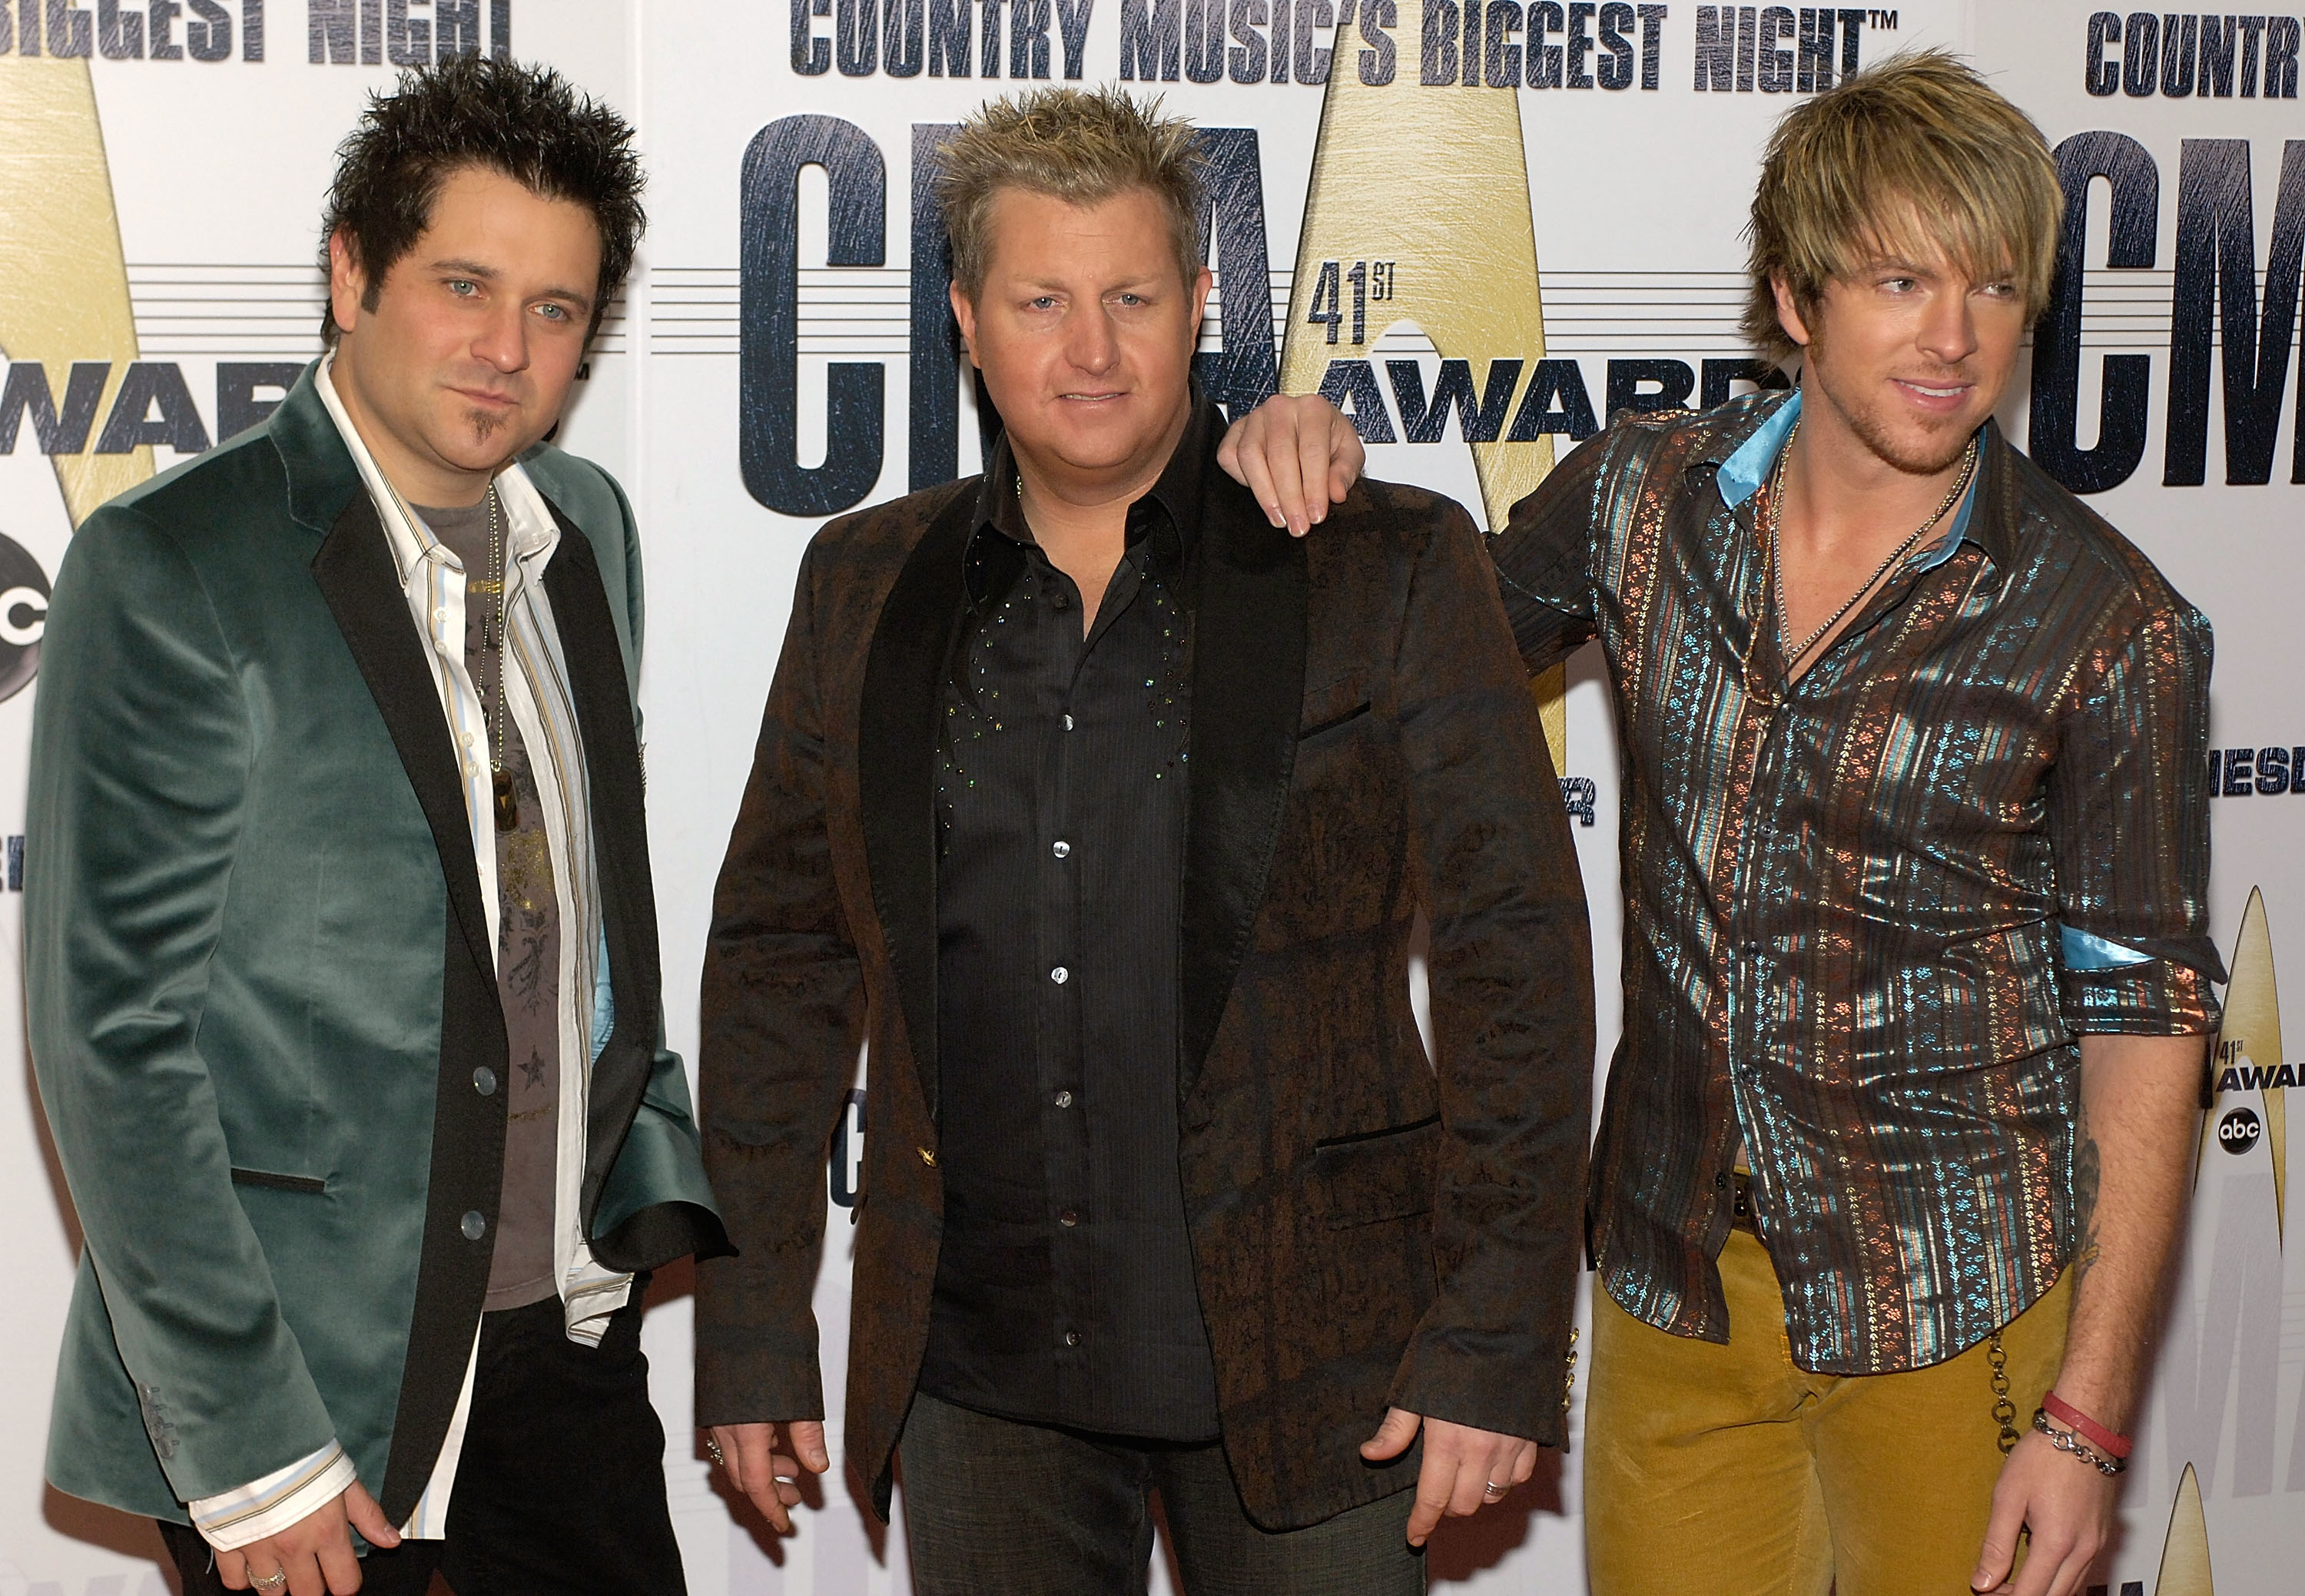 Rascal Flatts at the 41st Annual CMA Awards at the Sommet Center on November 7, 2007 in Nashville TN; Photo by Frank Mullen/WireImage